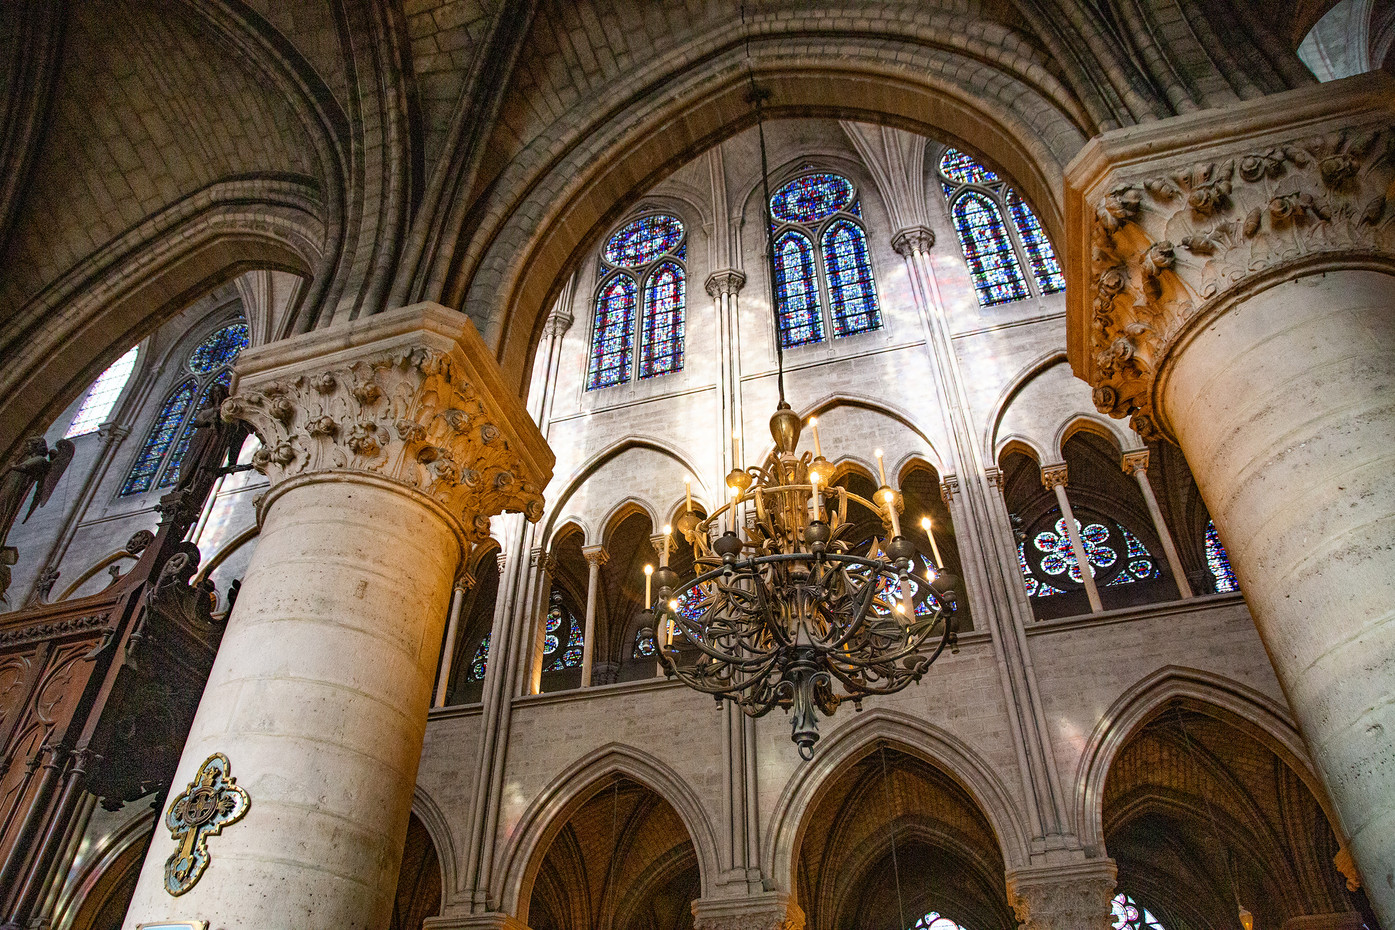 Inside the Notre Dame Cathedral in Paris, France